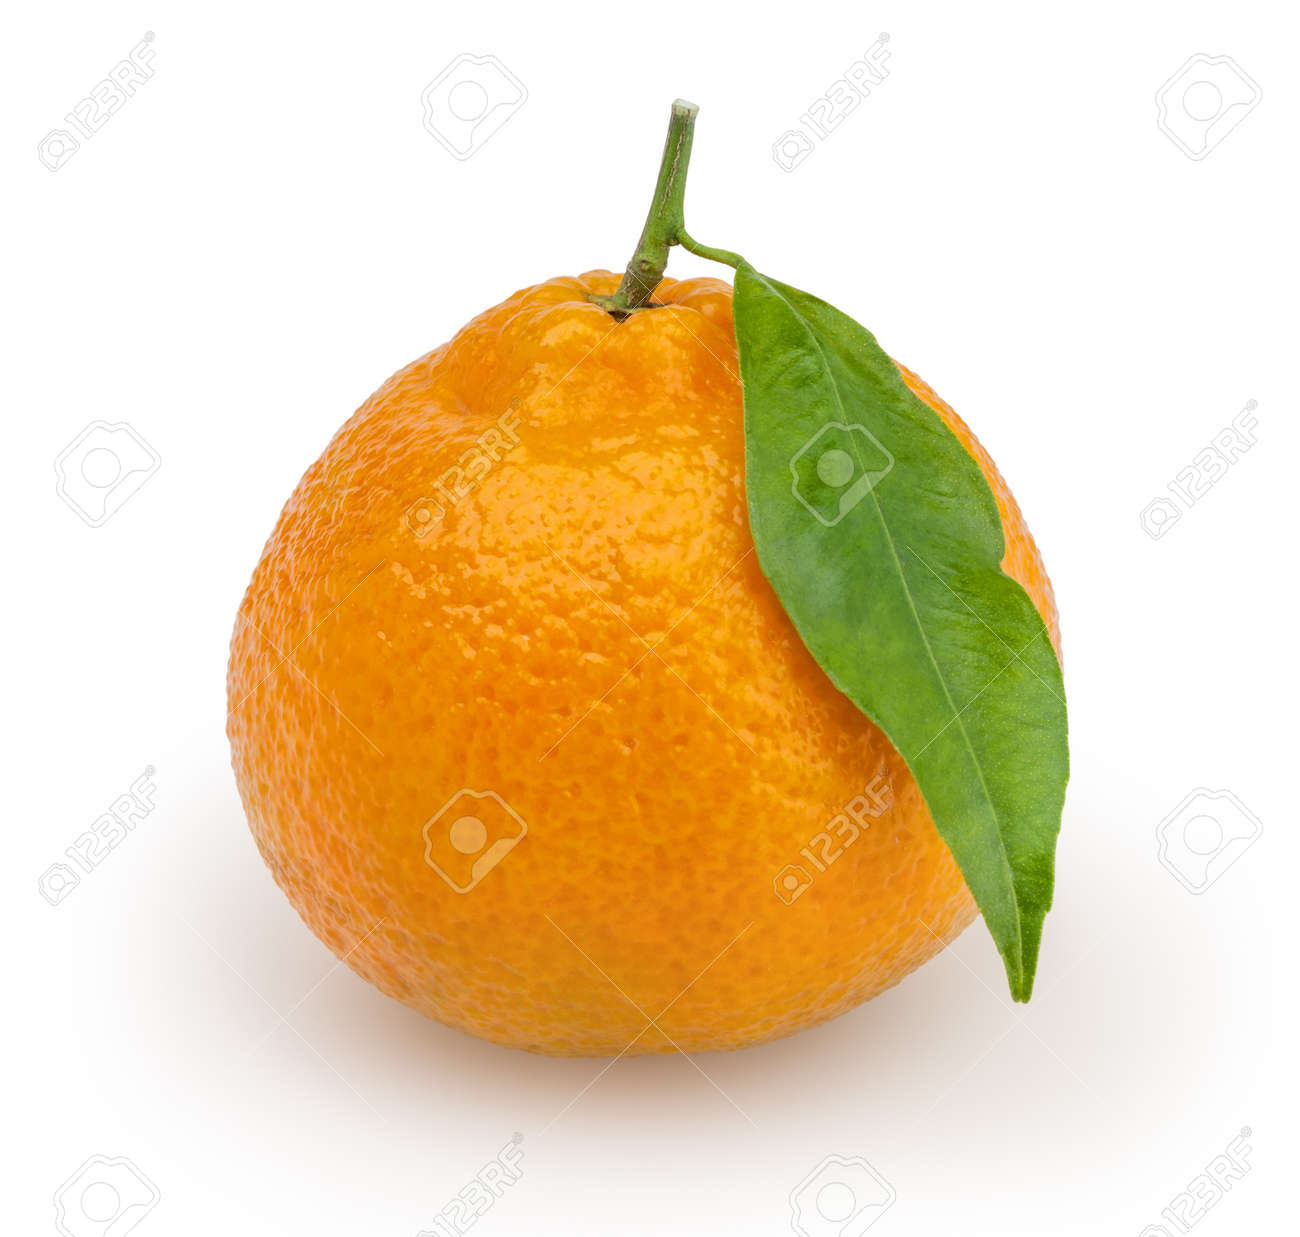 Tangerine isolated on white background with clipping path Stock Photo - 18148416